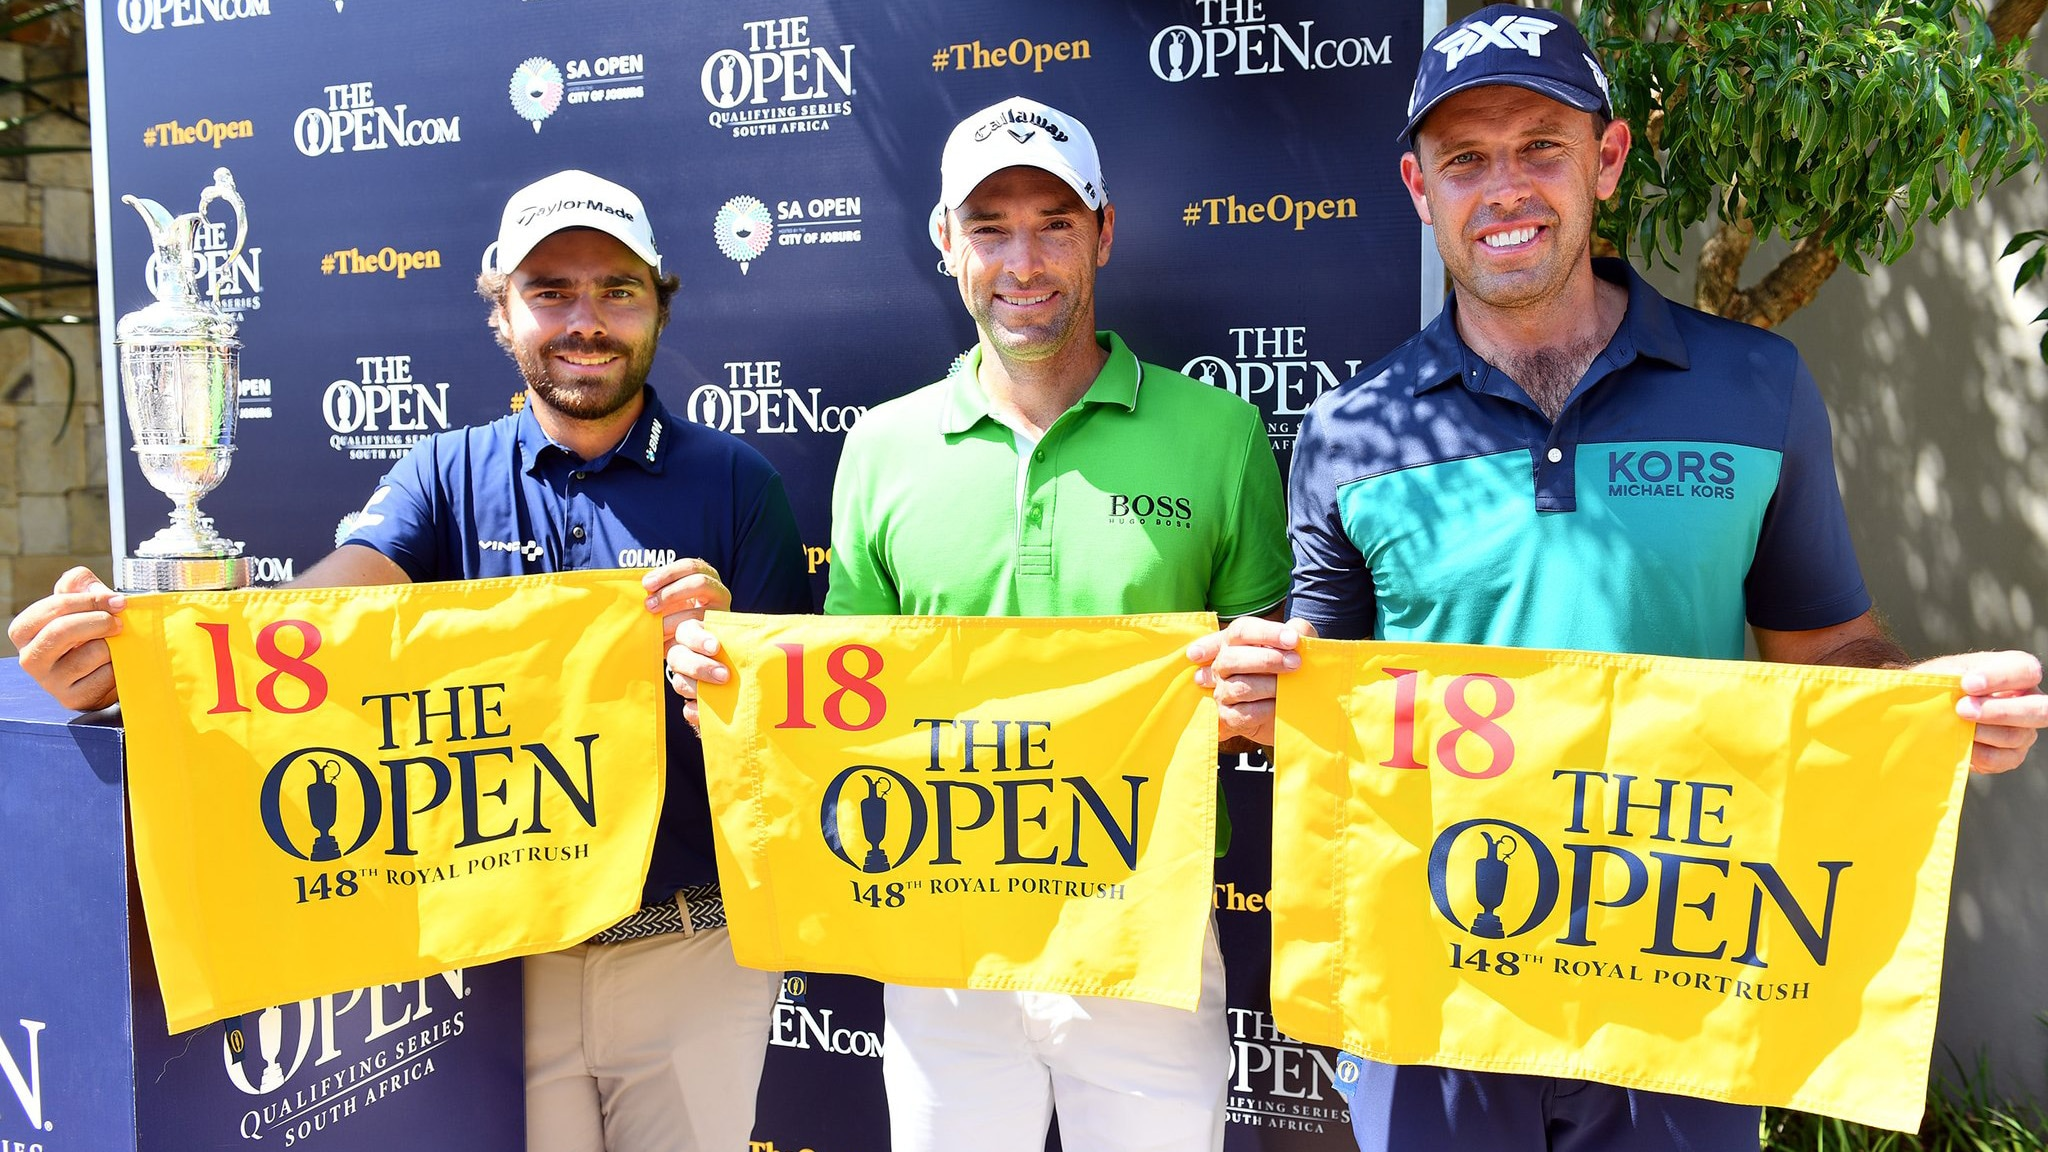 2019 Open Championship qualifiers Romain Langasque, Oliver Wilson and Charl Schwartzel at the 2018 South African Open